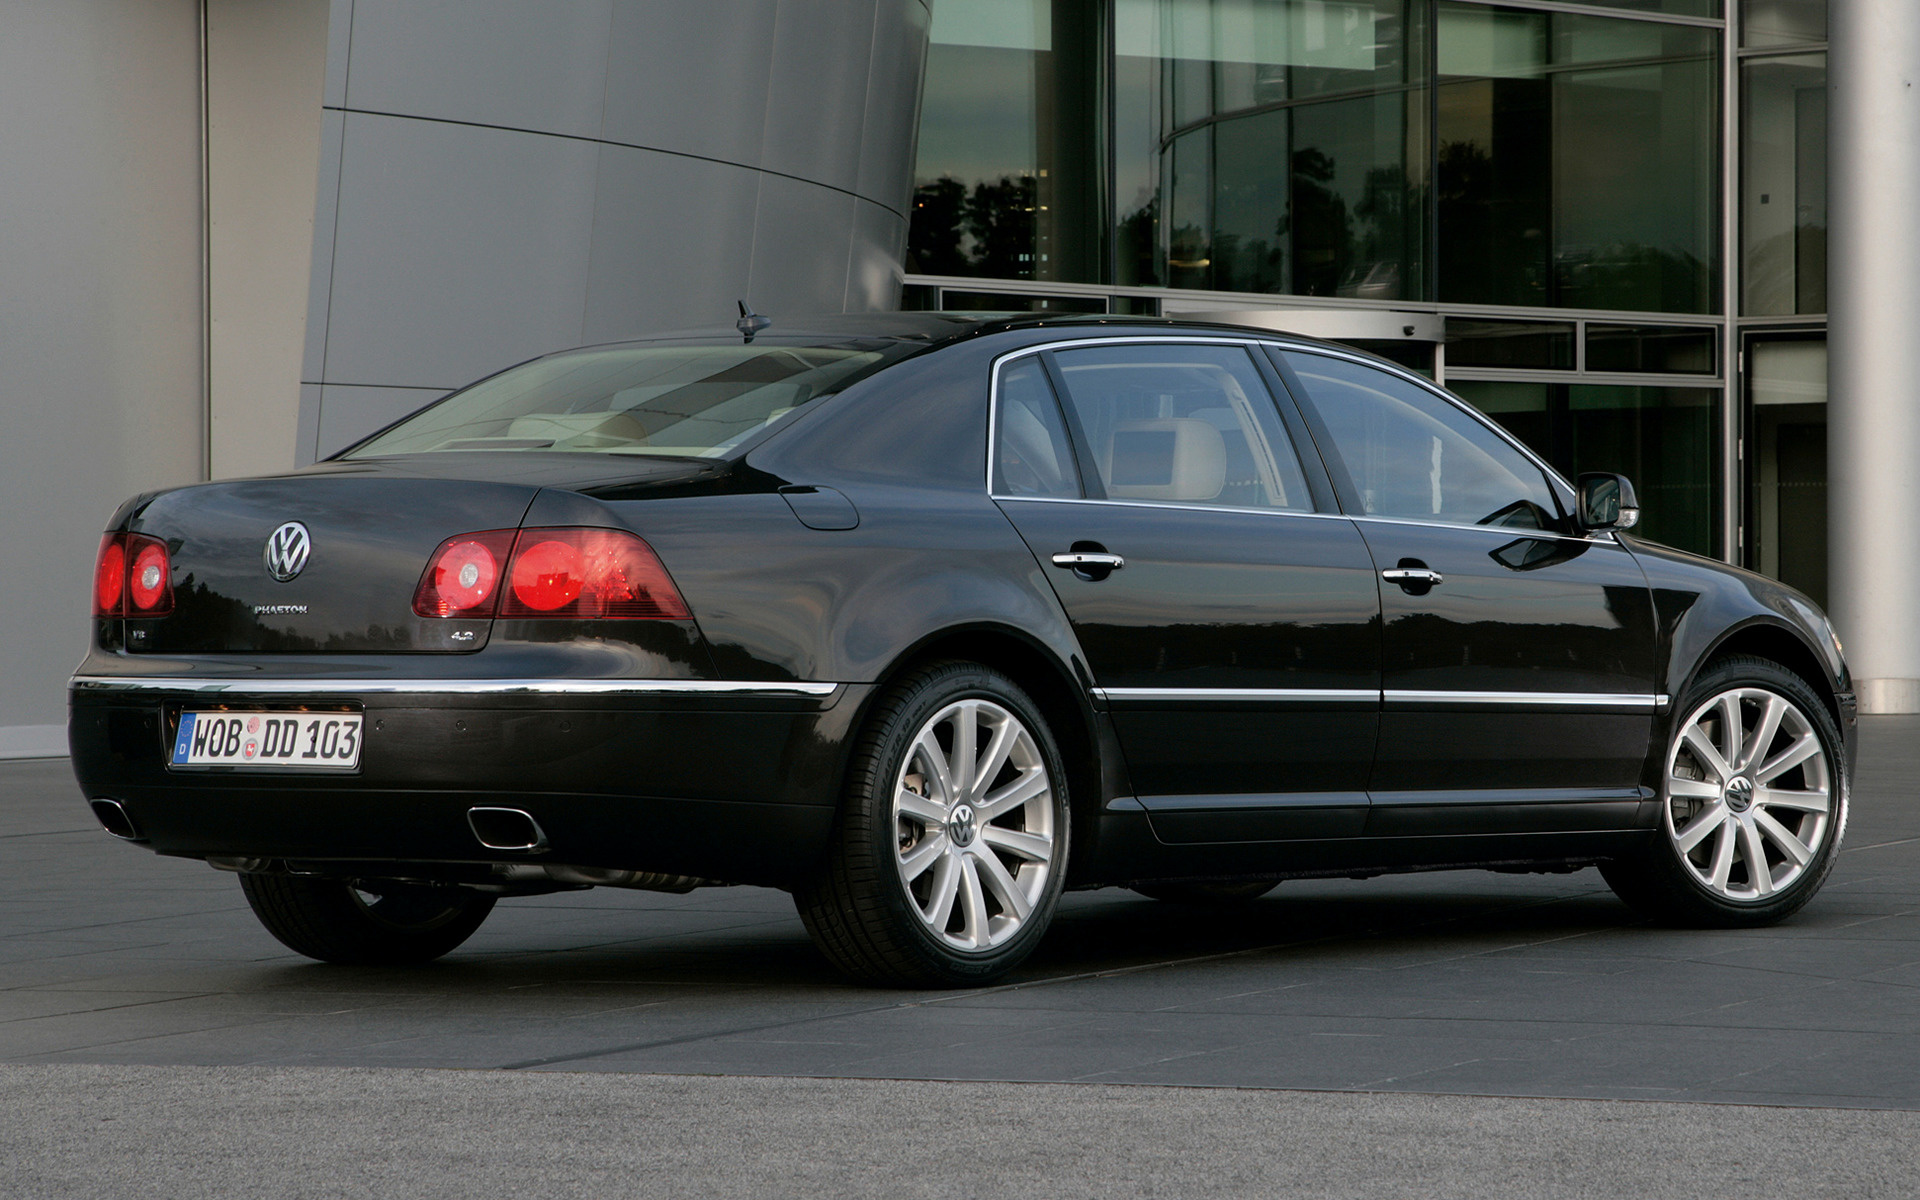 Volkswagen Phaeton (2007) Wallpapers and HD Images - Car Pixel